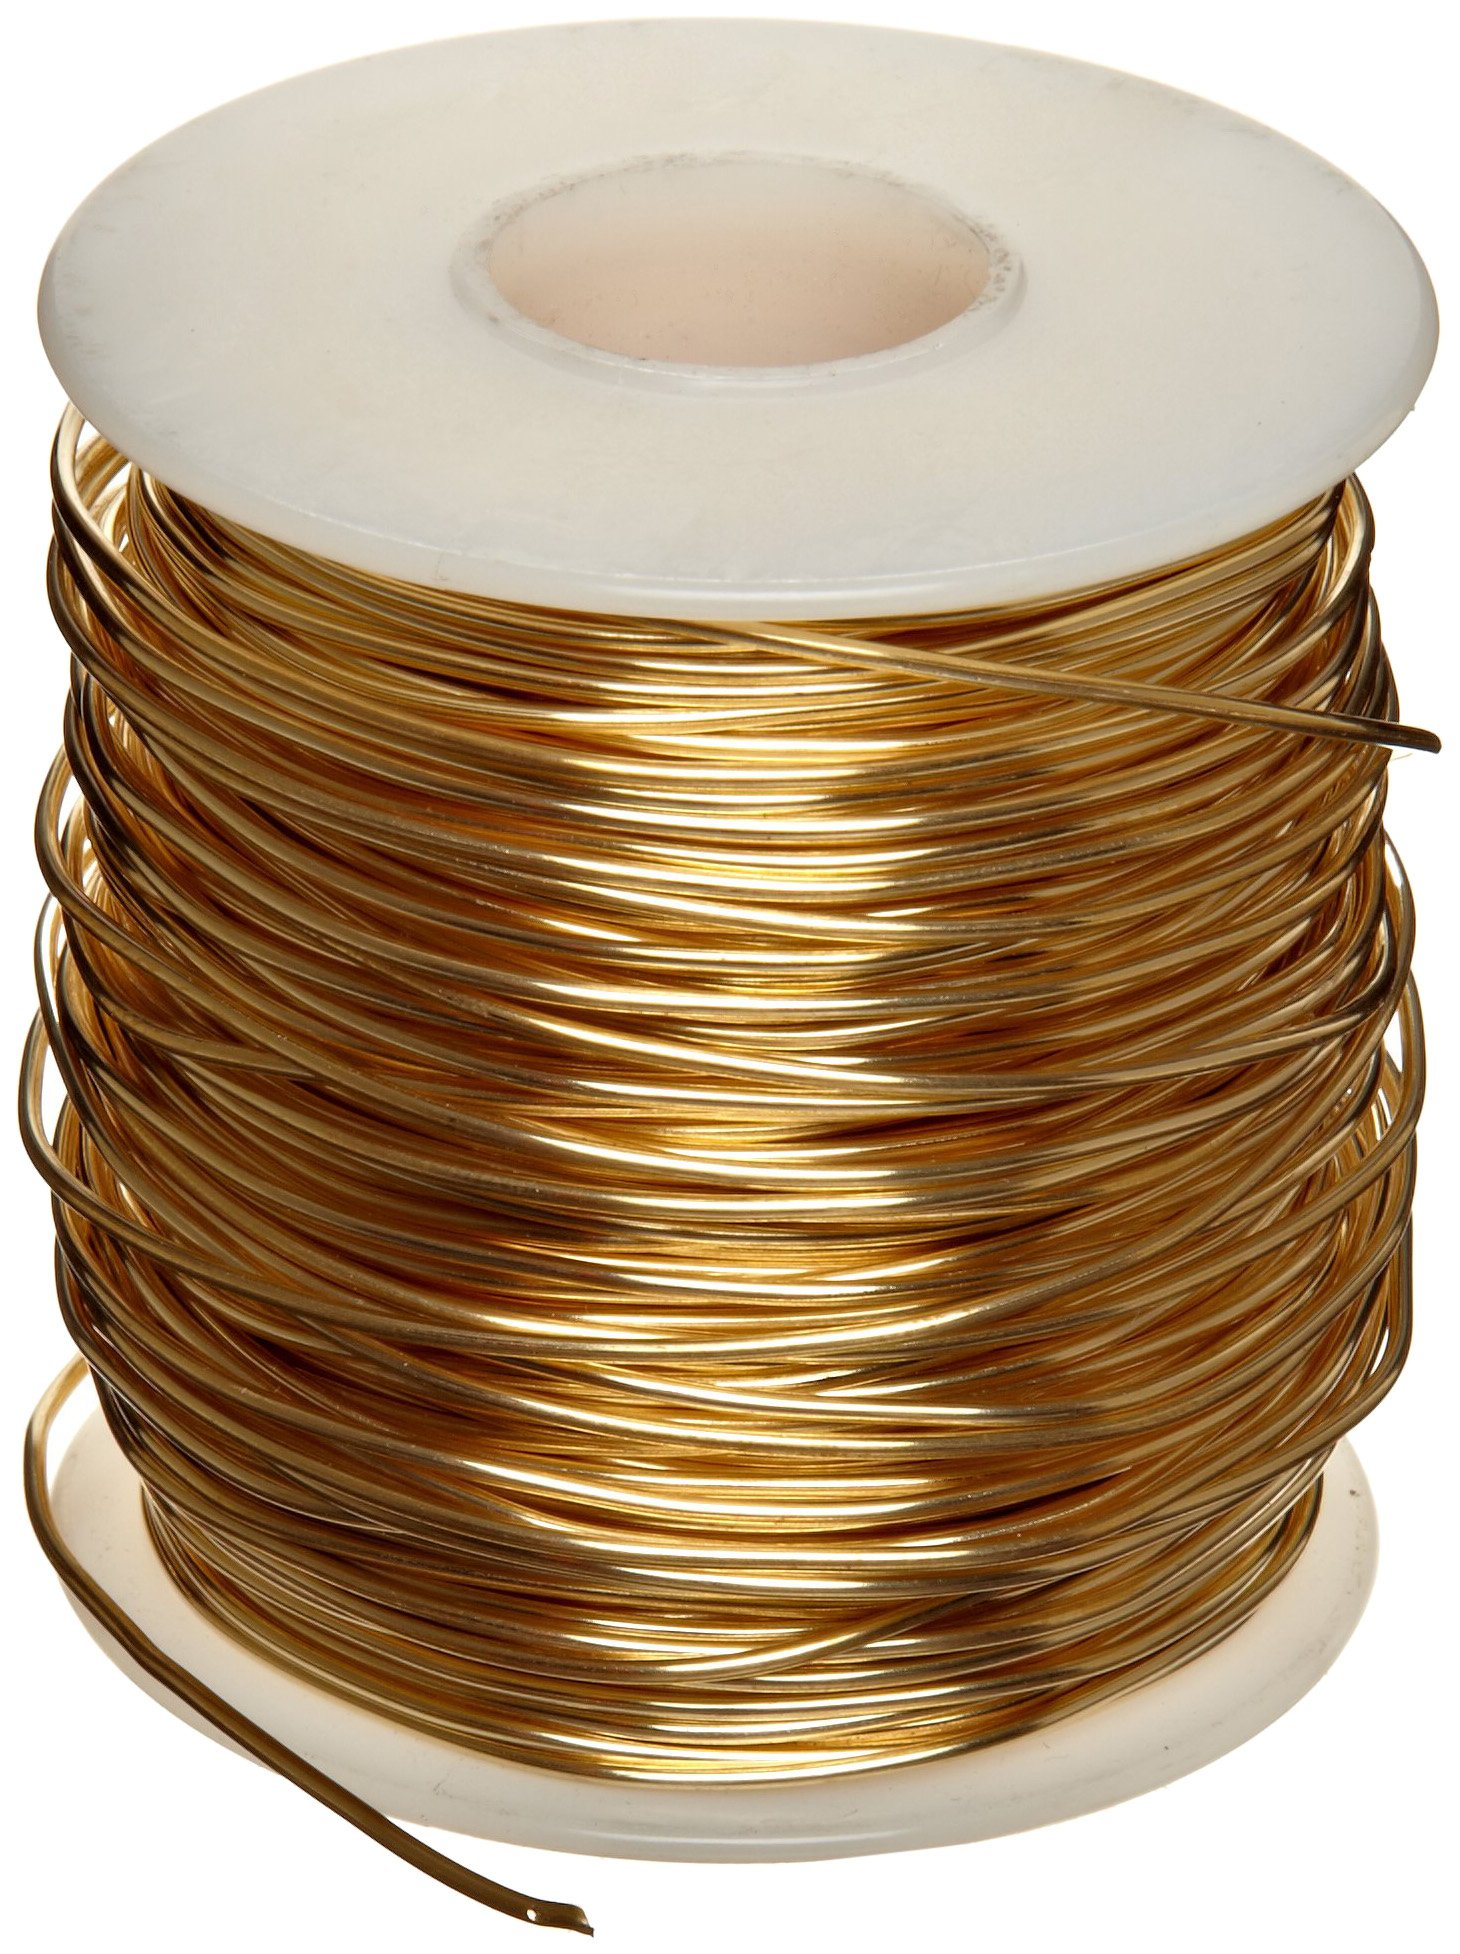 230 Brass Wire, Unpolished (Mill) Finish, Annealed, Soft Temper, ASTM B134, 0.02'' Diameter, 3965' Length by Small Parts